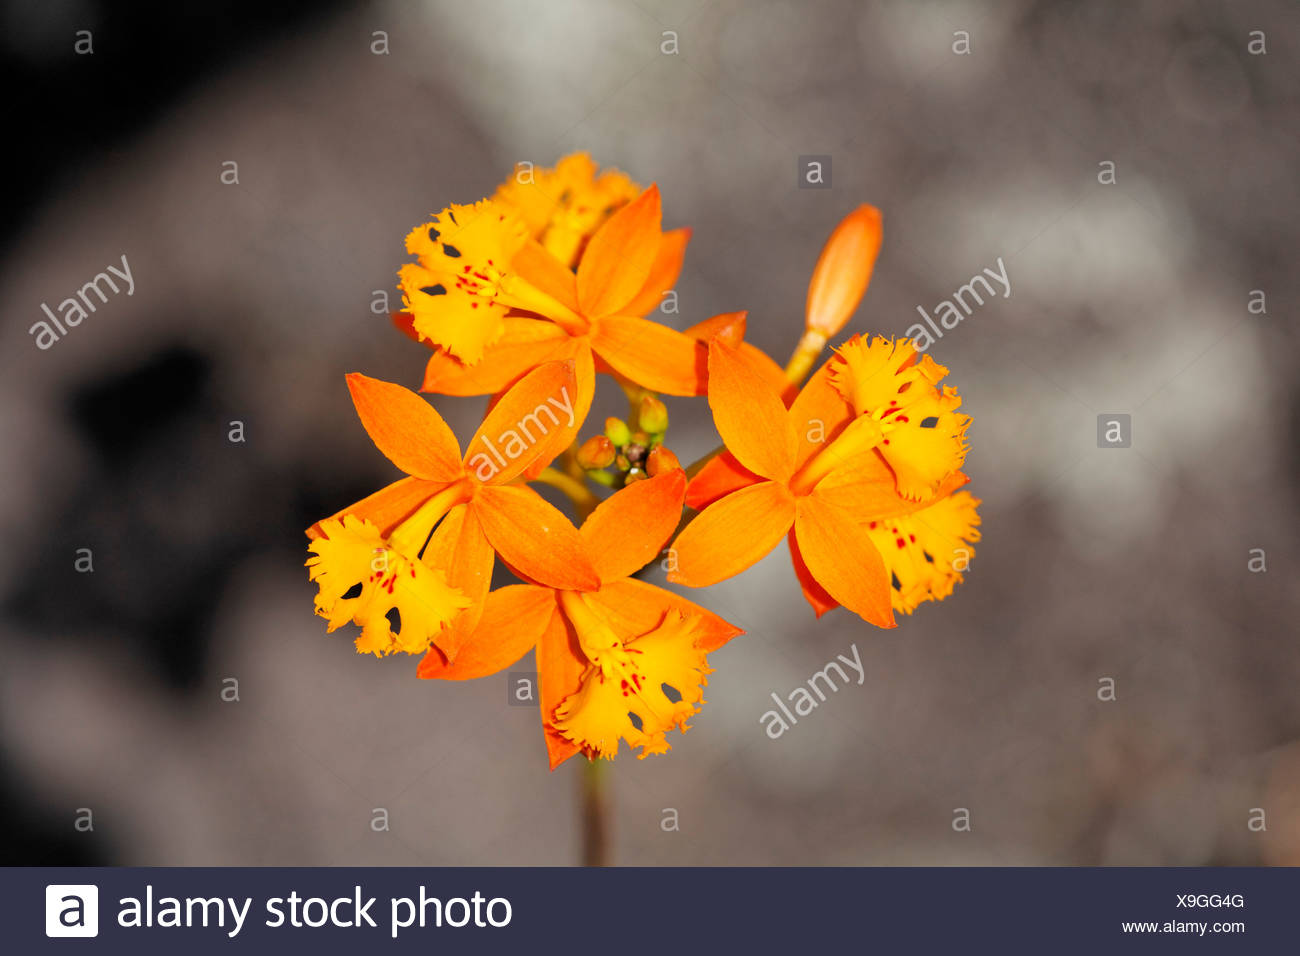 Fire star orchid Epidendrum radicans), Costa Rica - Stock Image